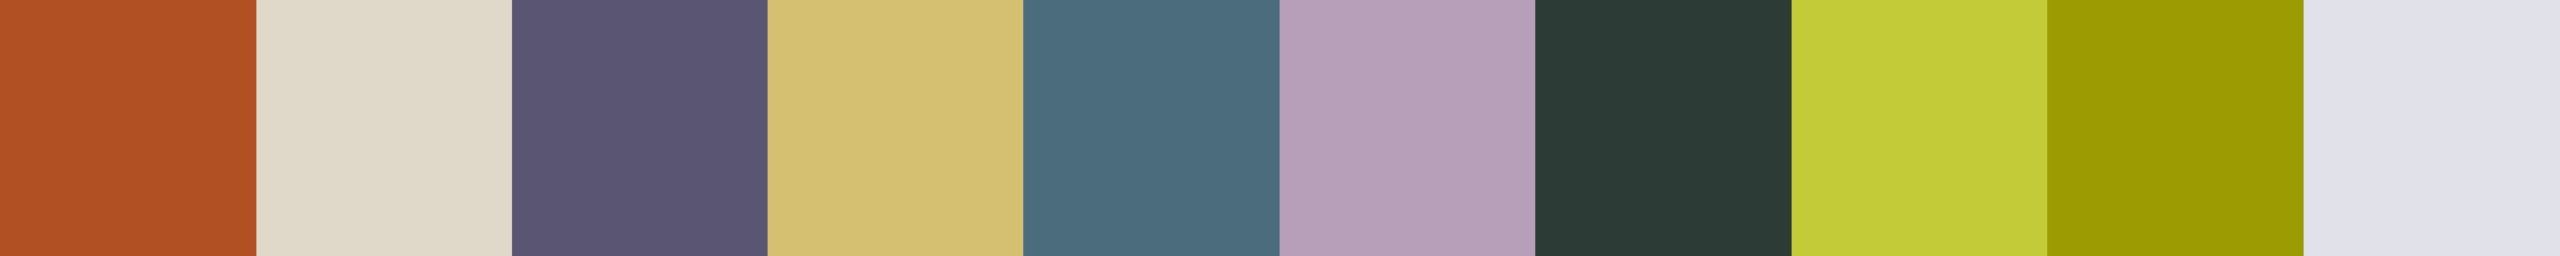 748 Elefsia Color Palette